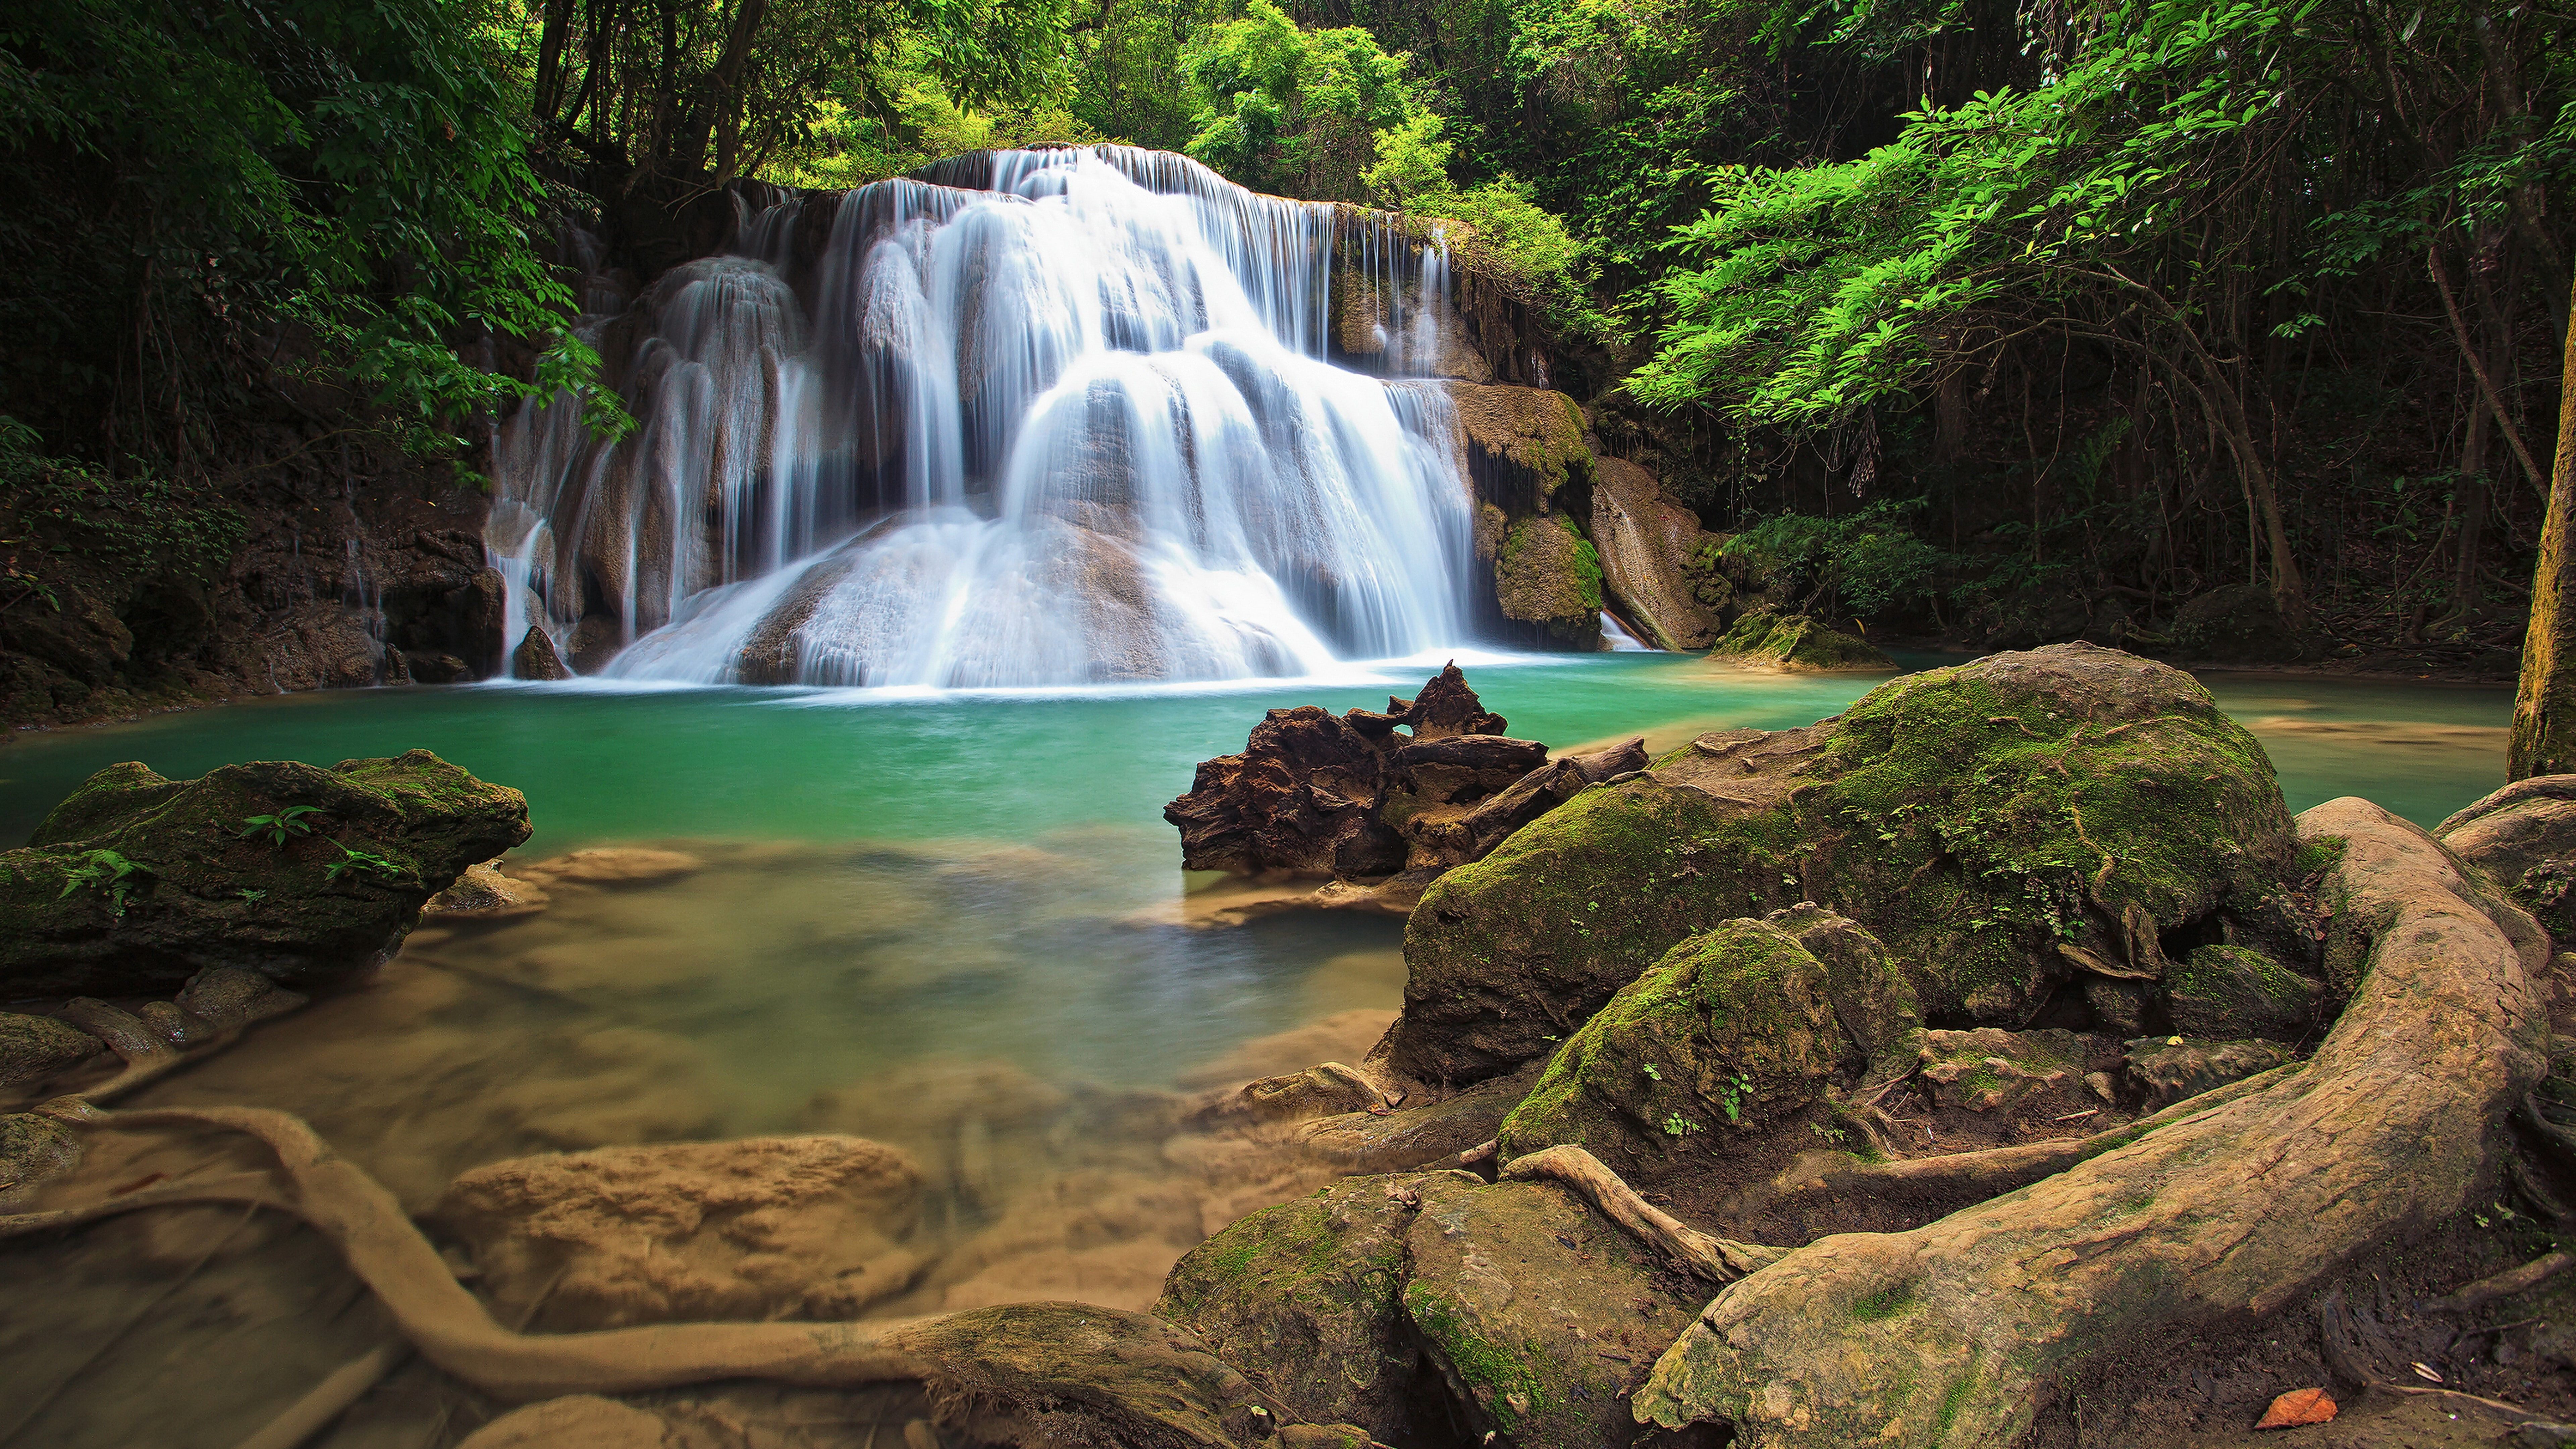 Nature Backgrounds Images 7680x4320 8k Wallpaper Hdwallpaper Desktop In 2020 Nature Background Images Nature Backgrounds Waterfall Wallpaper